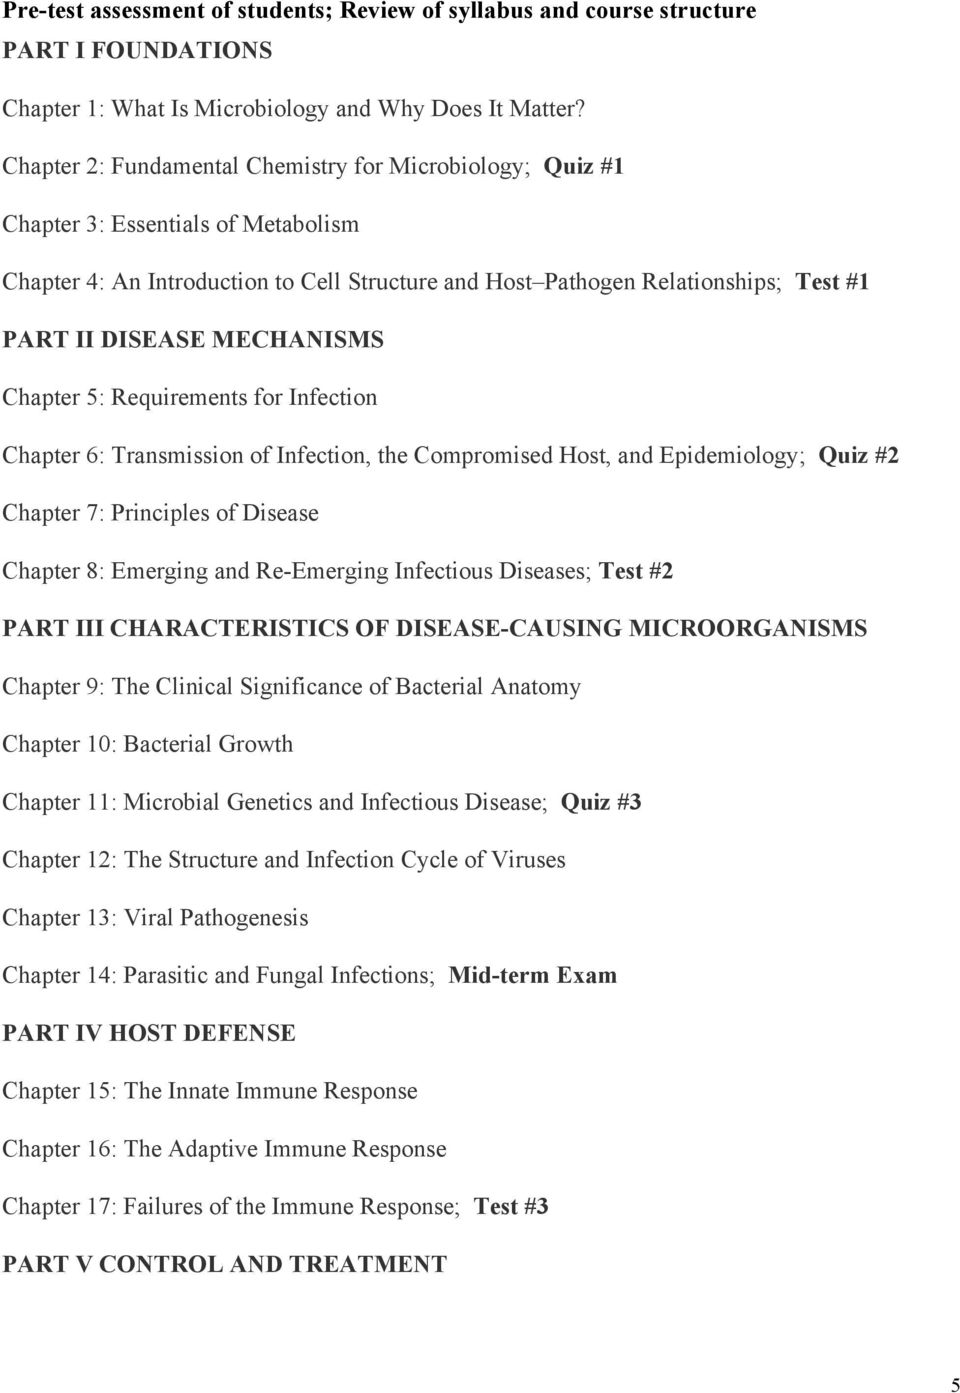 MECHANISMS Chapter 5: Requirements for Infection Chapter 6: Transmission of Infection, the Compromised Host, and Epidemiology; Quiz #2 Chapter 7: Principles of Disease Chapter 8: Emerging and